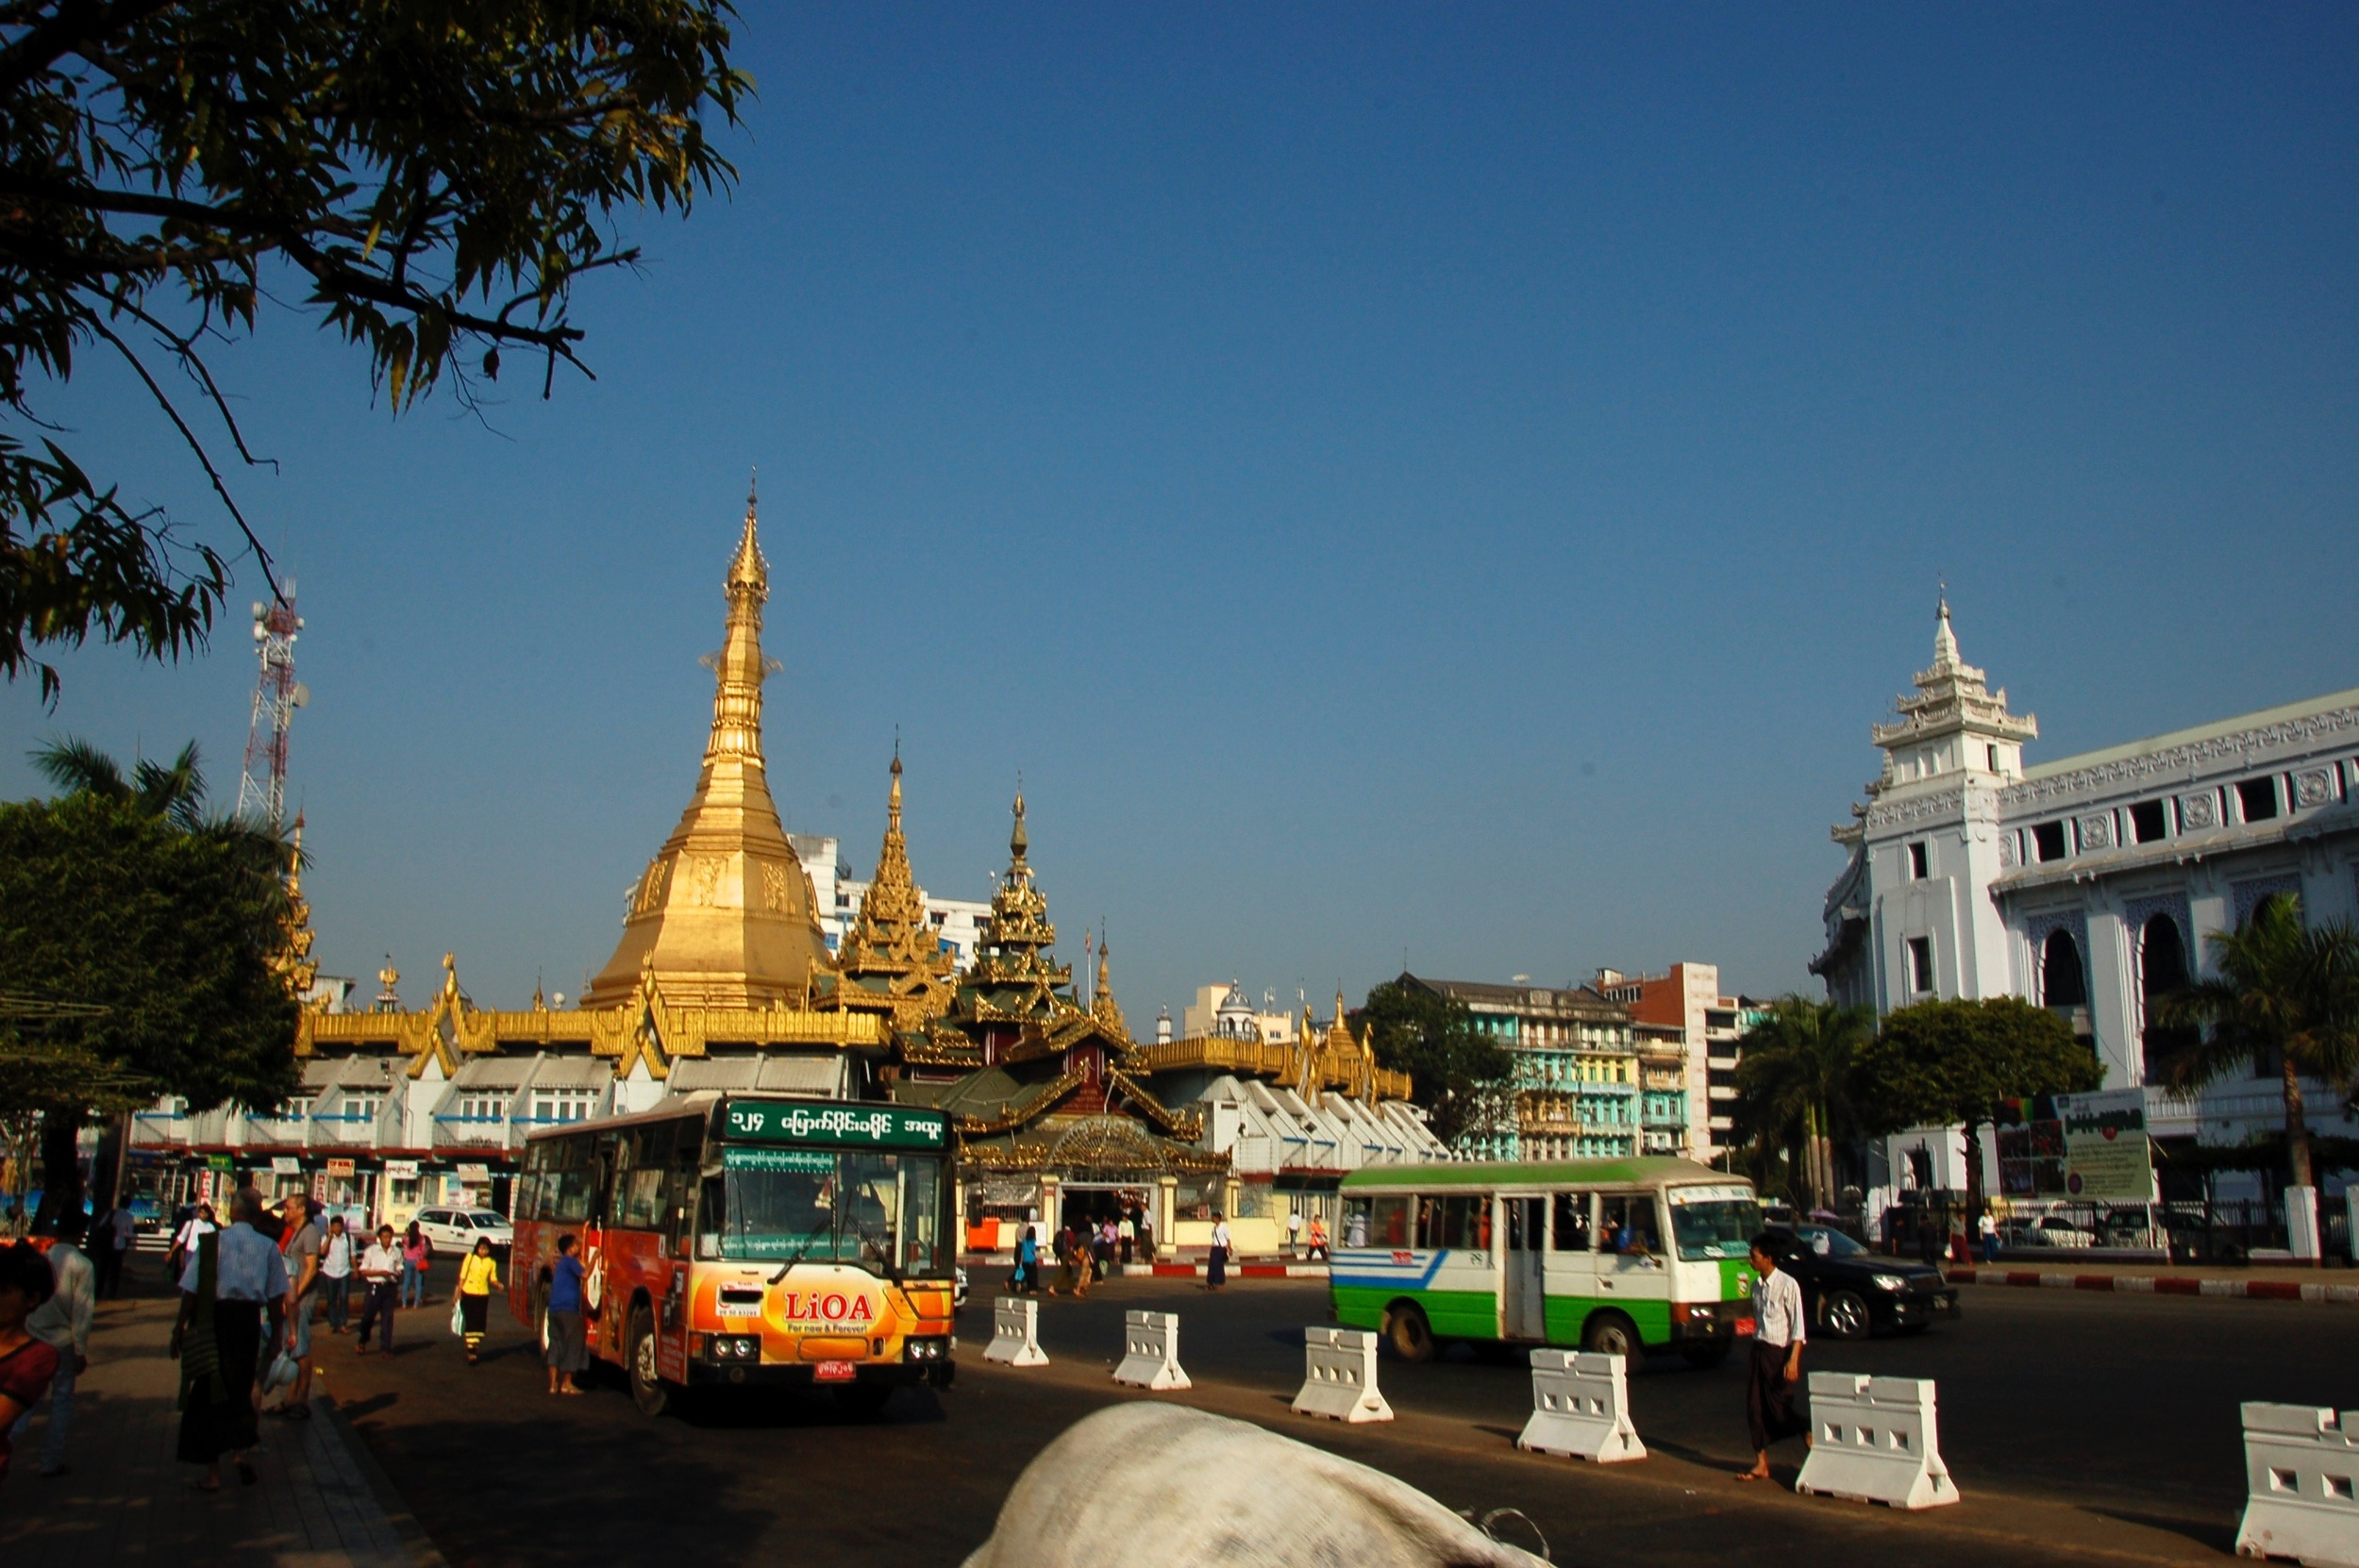 City Square, Yangon